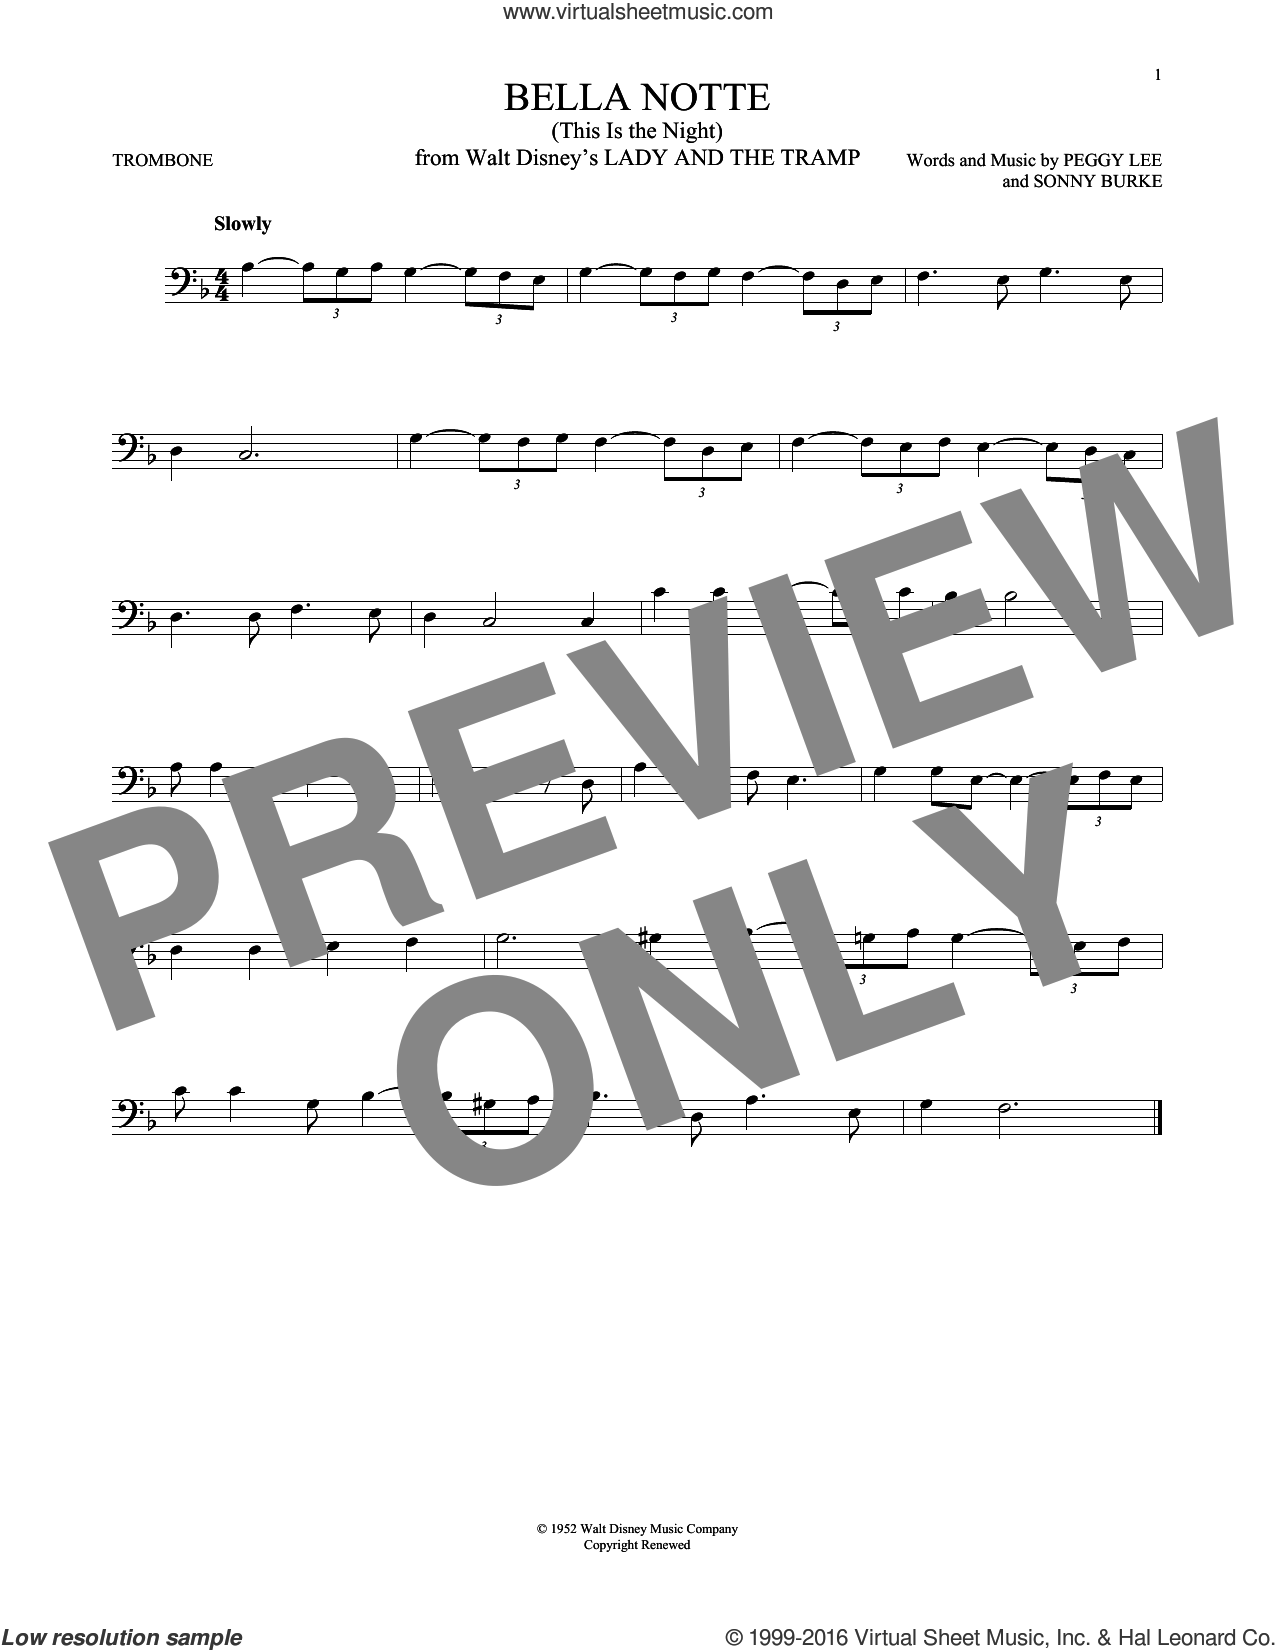 Bella Notte (from Lady And The Tramp) sheet music for trombone solo by Peggy Lee, Peggy Lee & Sonny Burke and Sonny Burke, intermediate skill level